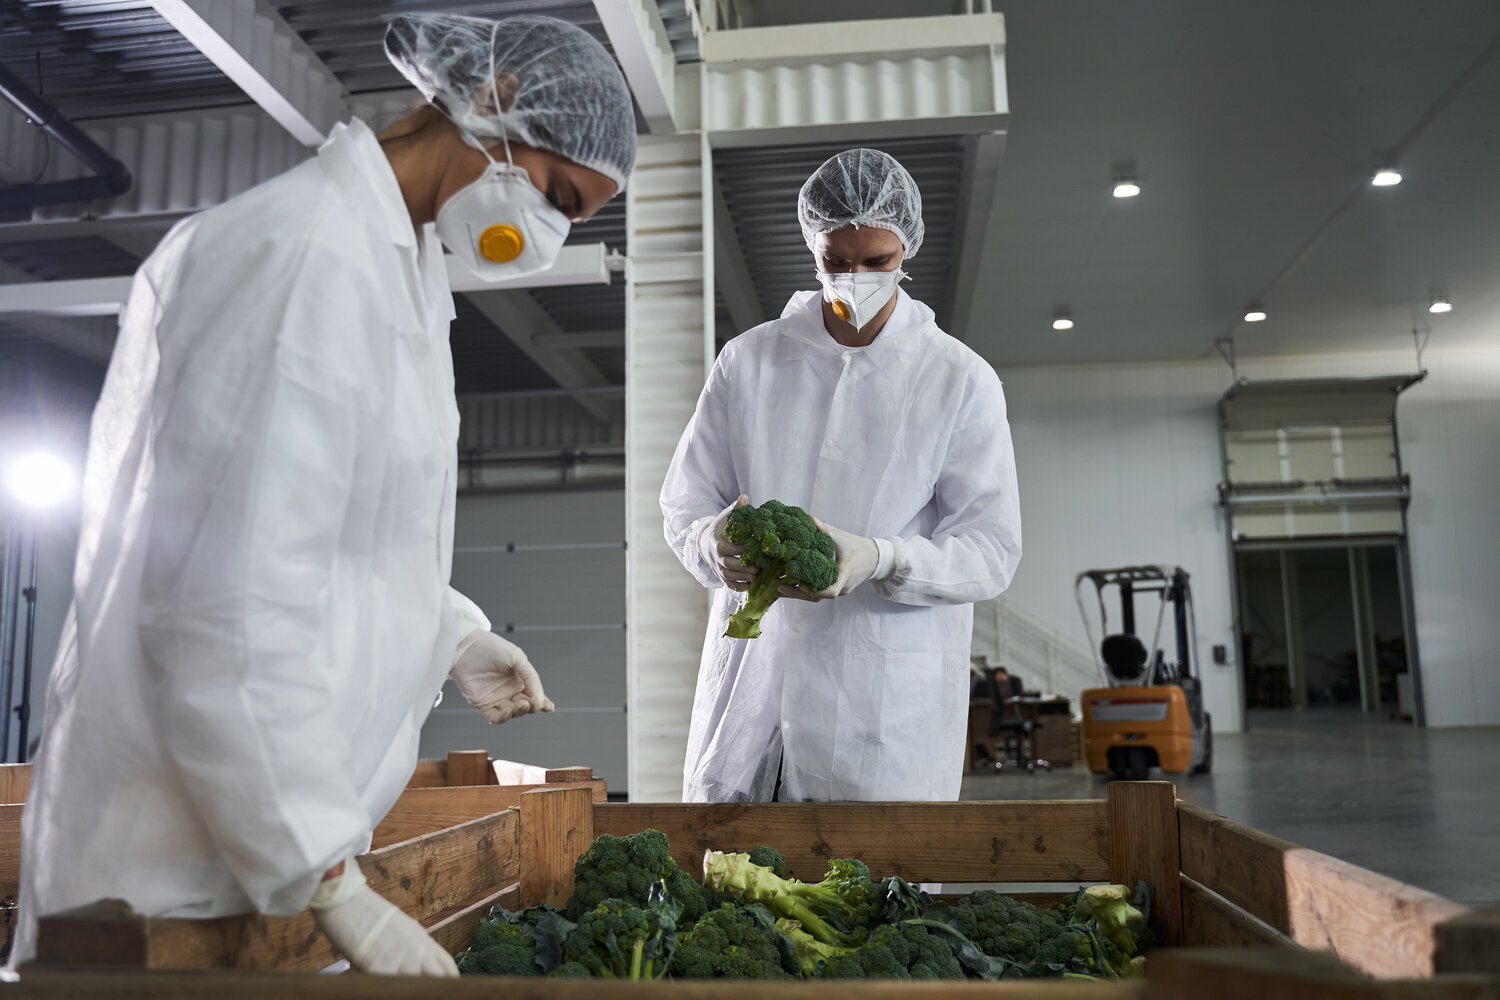 2 grocery warehouse employees in safety gowns and masks viewing a bin of brocolli